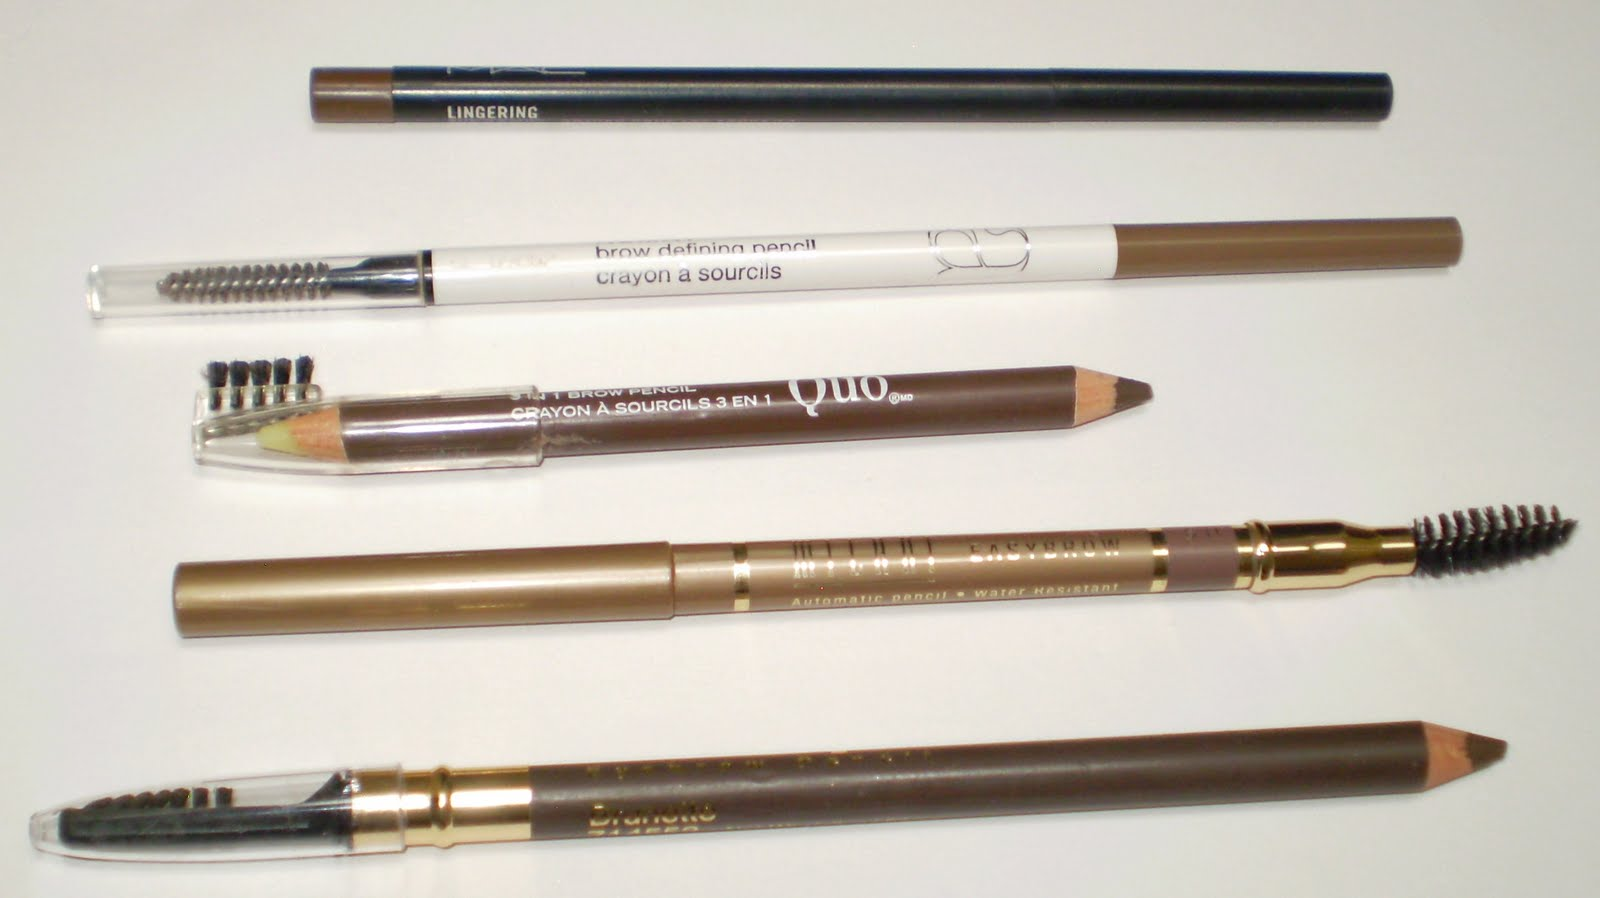 The best eyebrow pencil for brunettes shoot